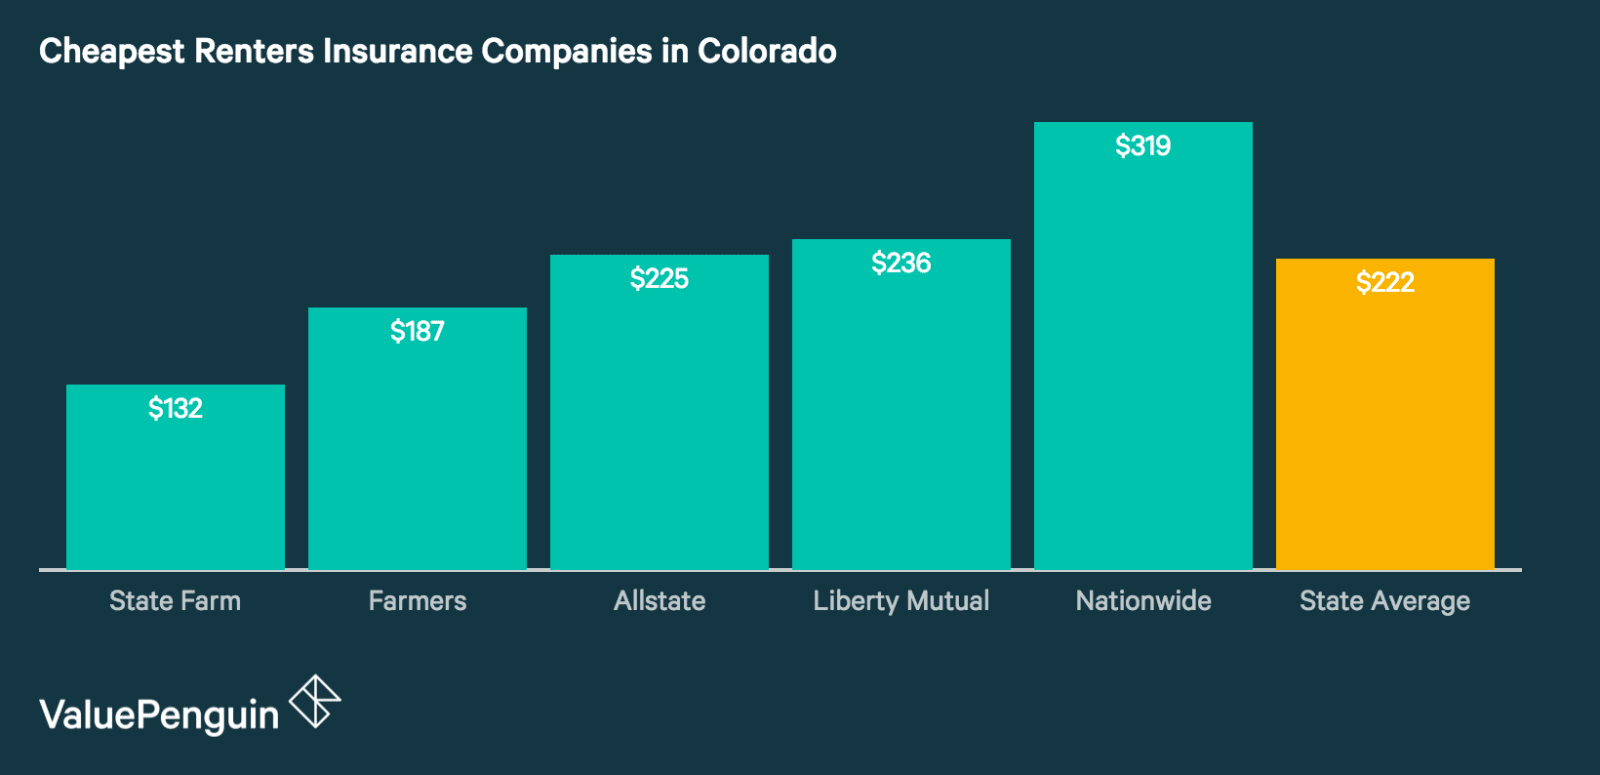 Most Affordable Renters Insurance Companies in Colorado